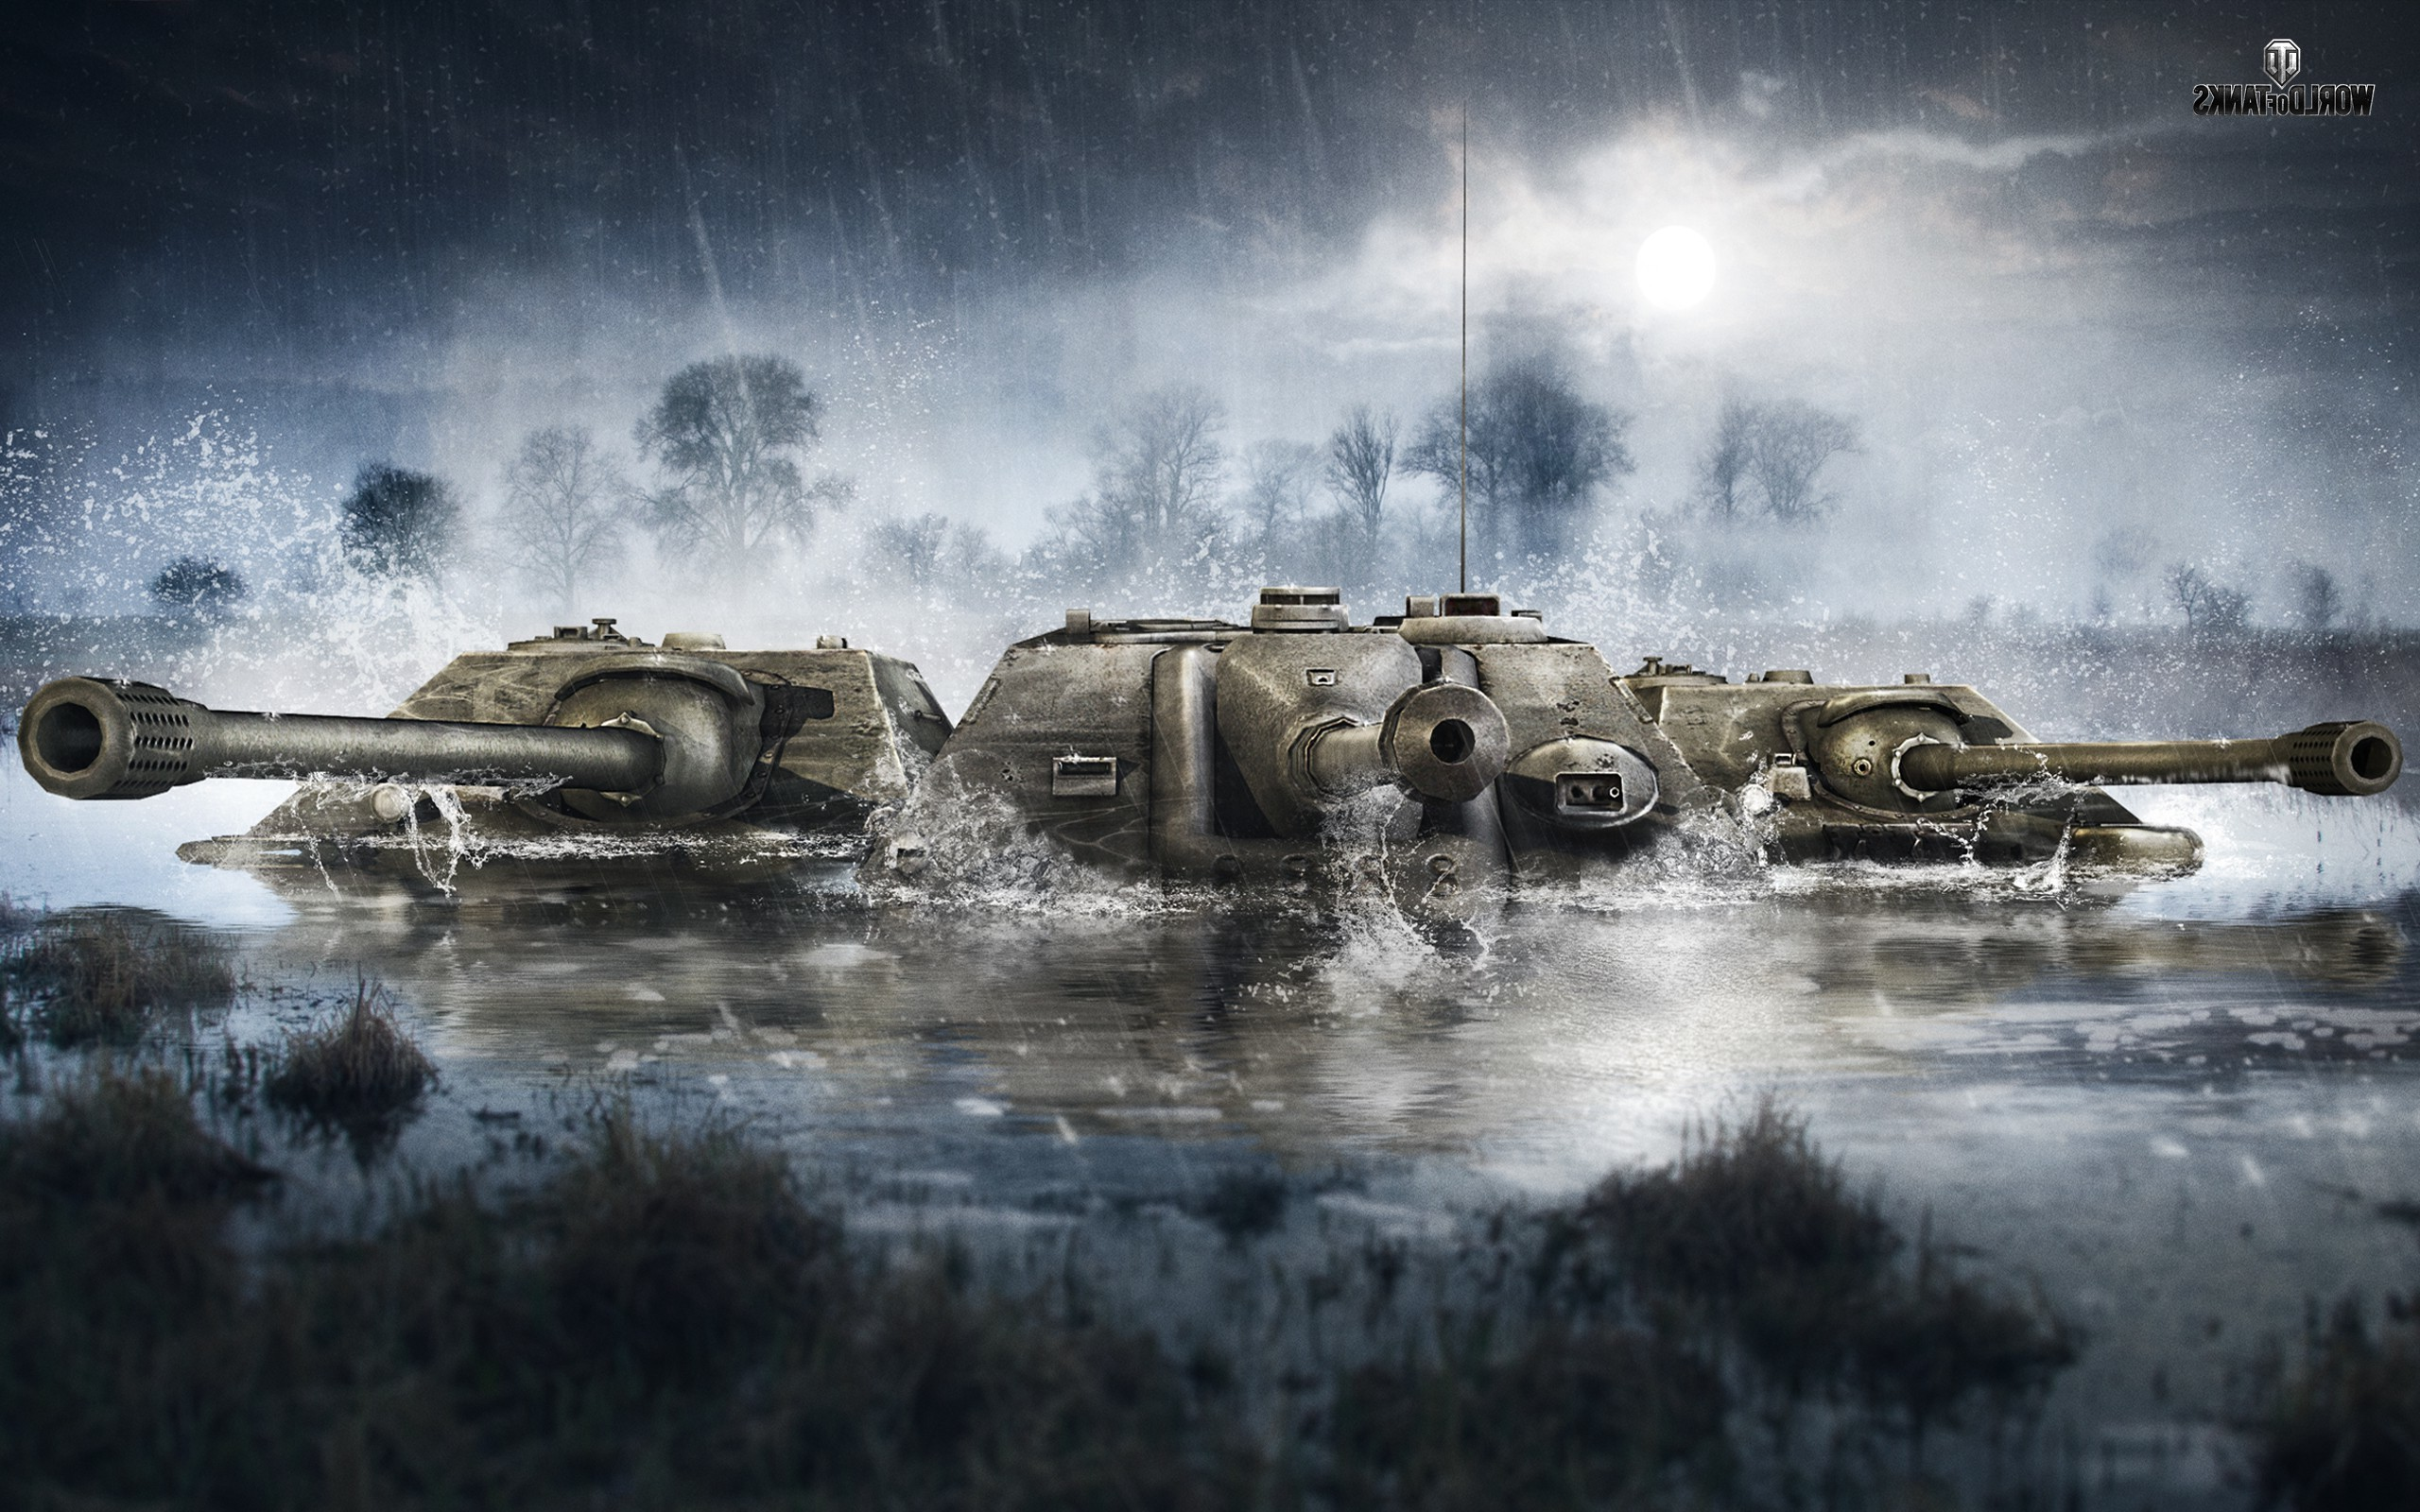 Epic Animal Wallpapers Tank Military World Of Tanks Video Games Underwater